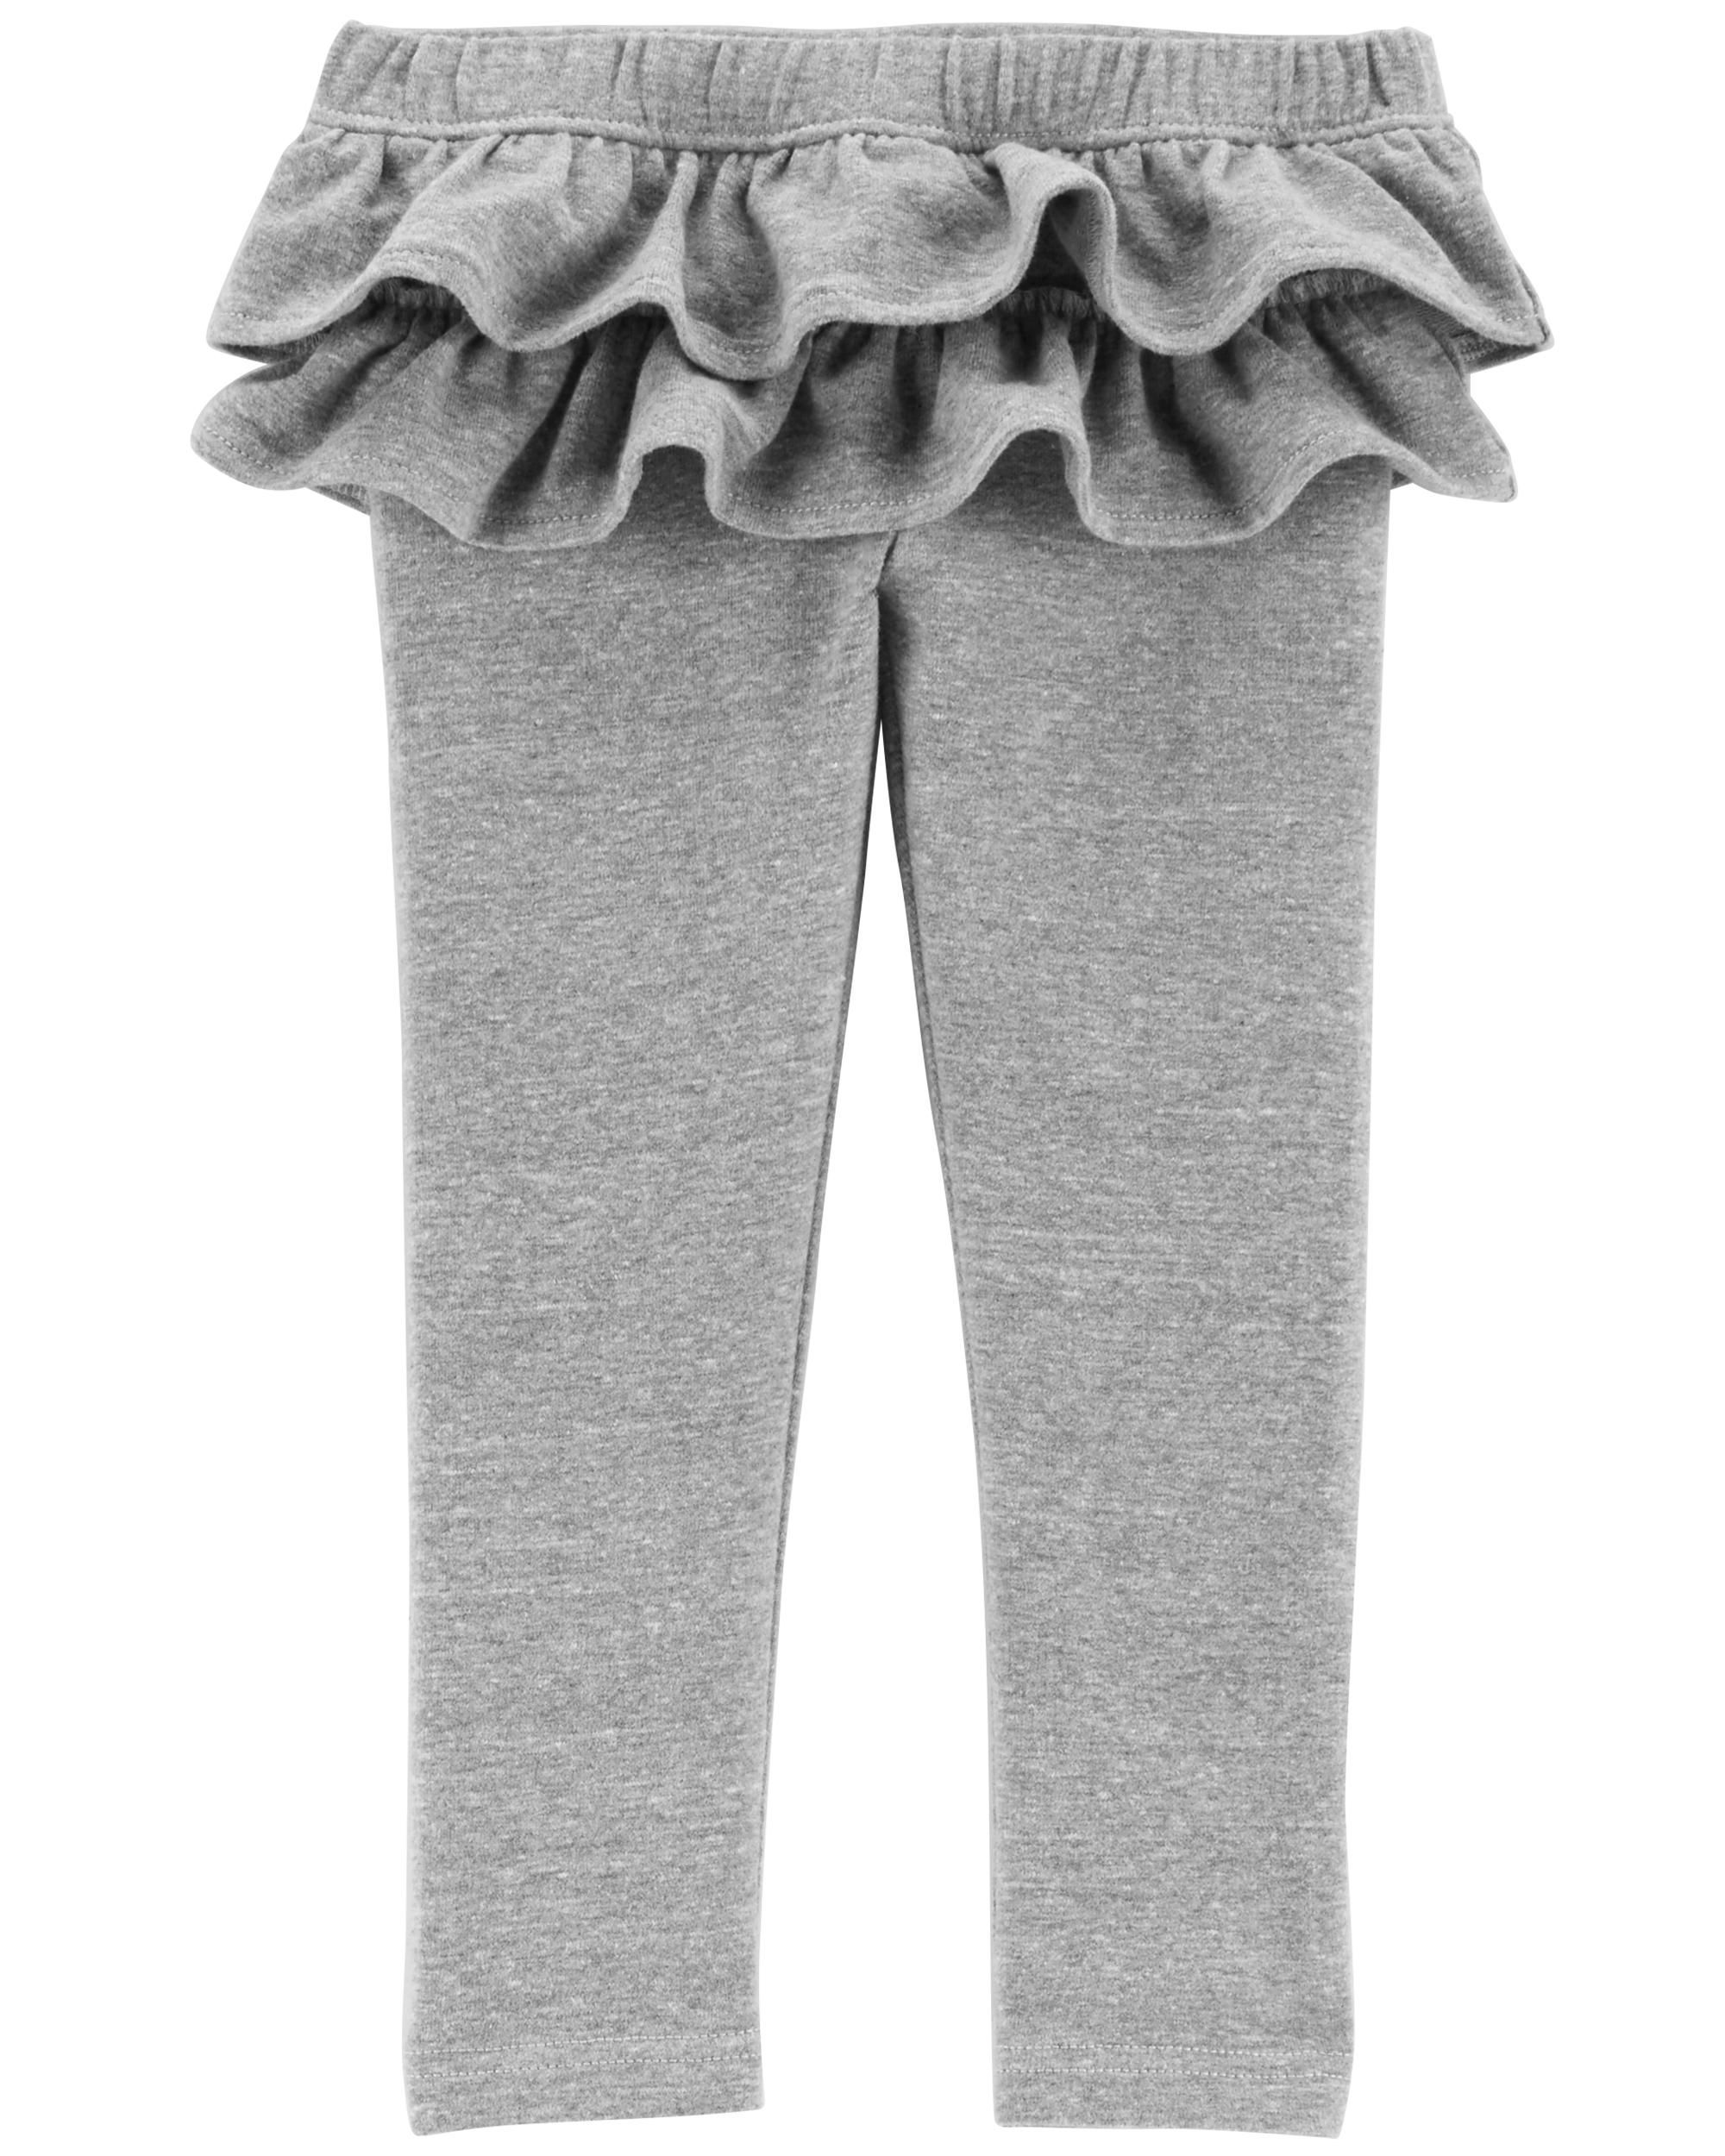 bc59b7cfbe641 Ruffle French Terry Pants | MISC...Children's Clothes Wish List ...